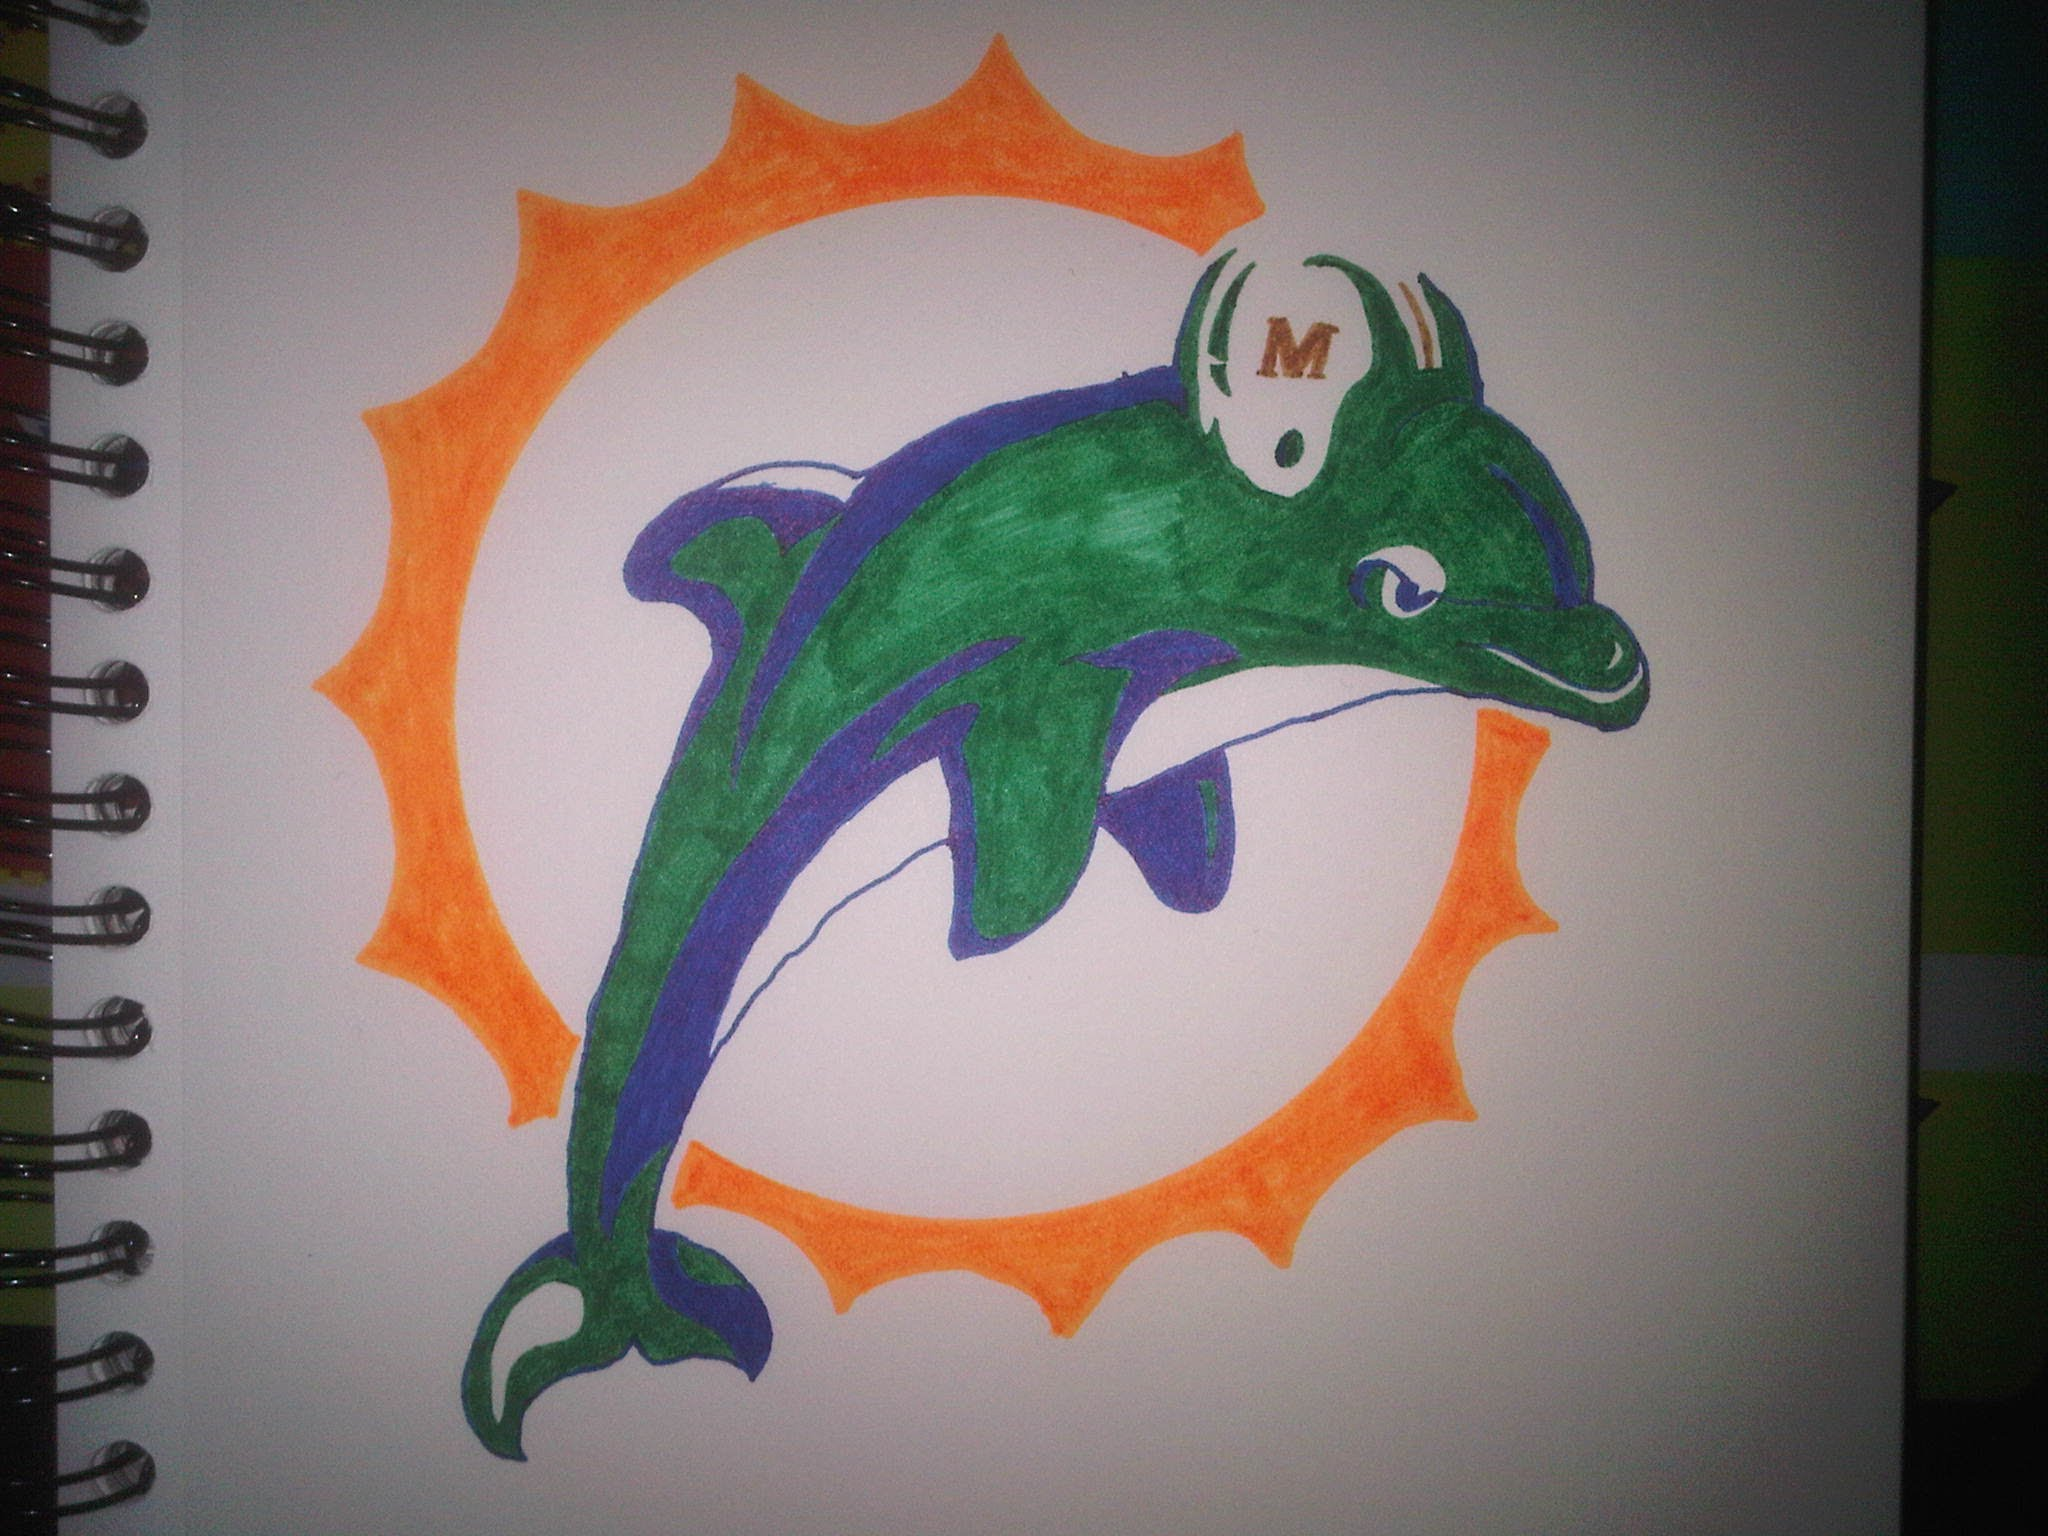 2048x1536 How To Draw The Miami Dolphins Logo (1997 2012)